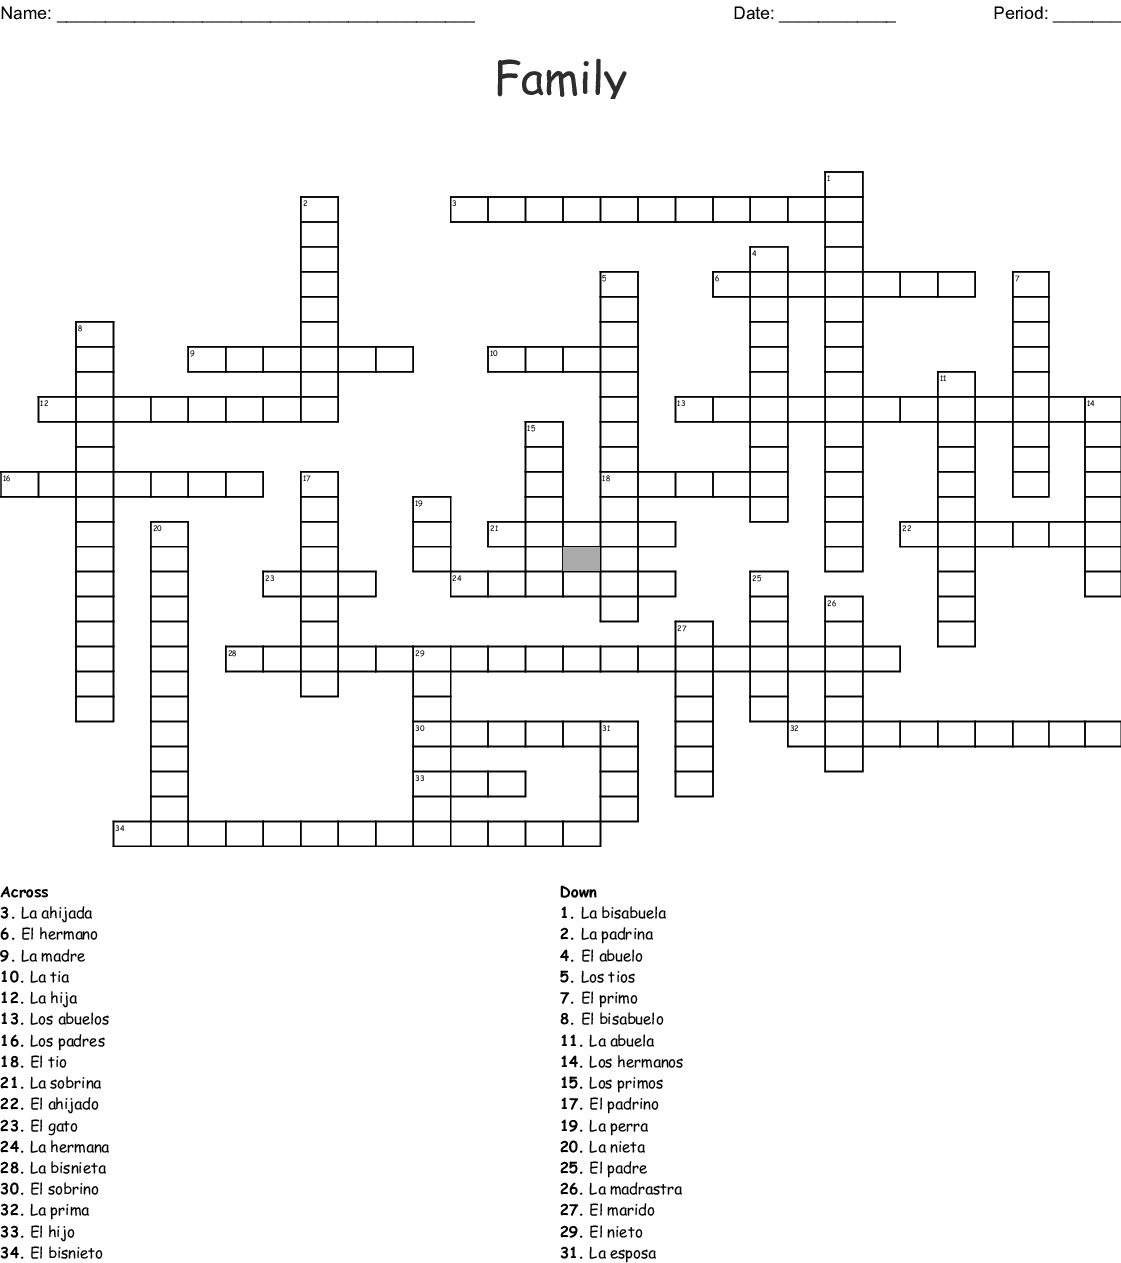 Family Members/ Miembros de la Familia Crossword - WordMint